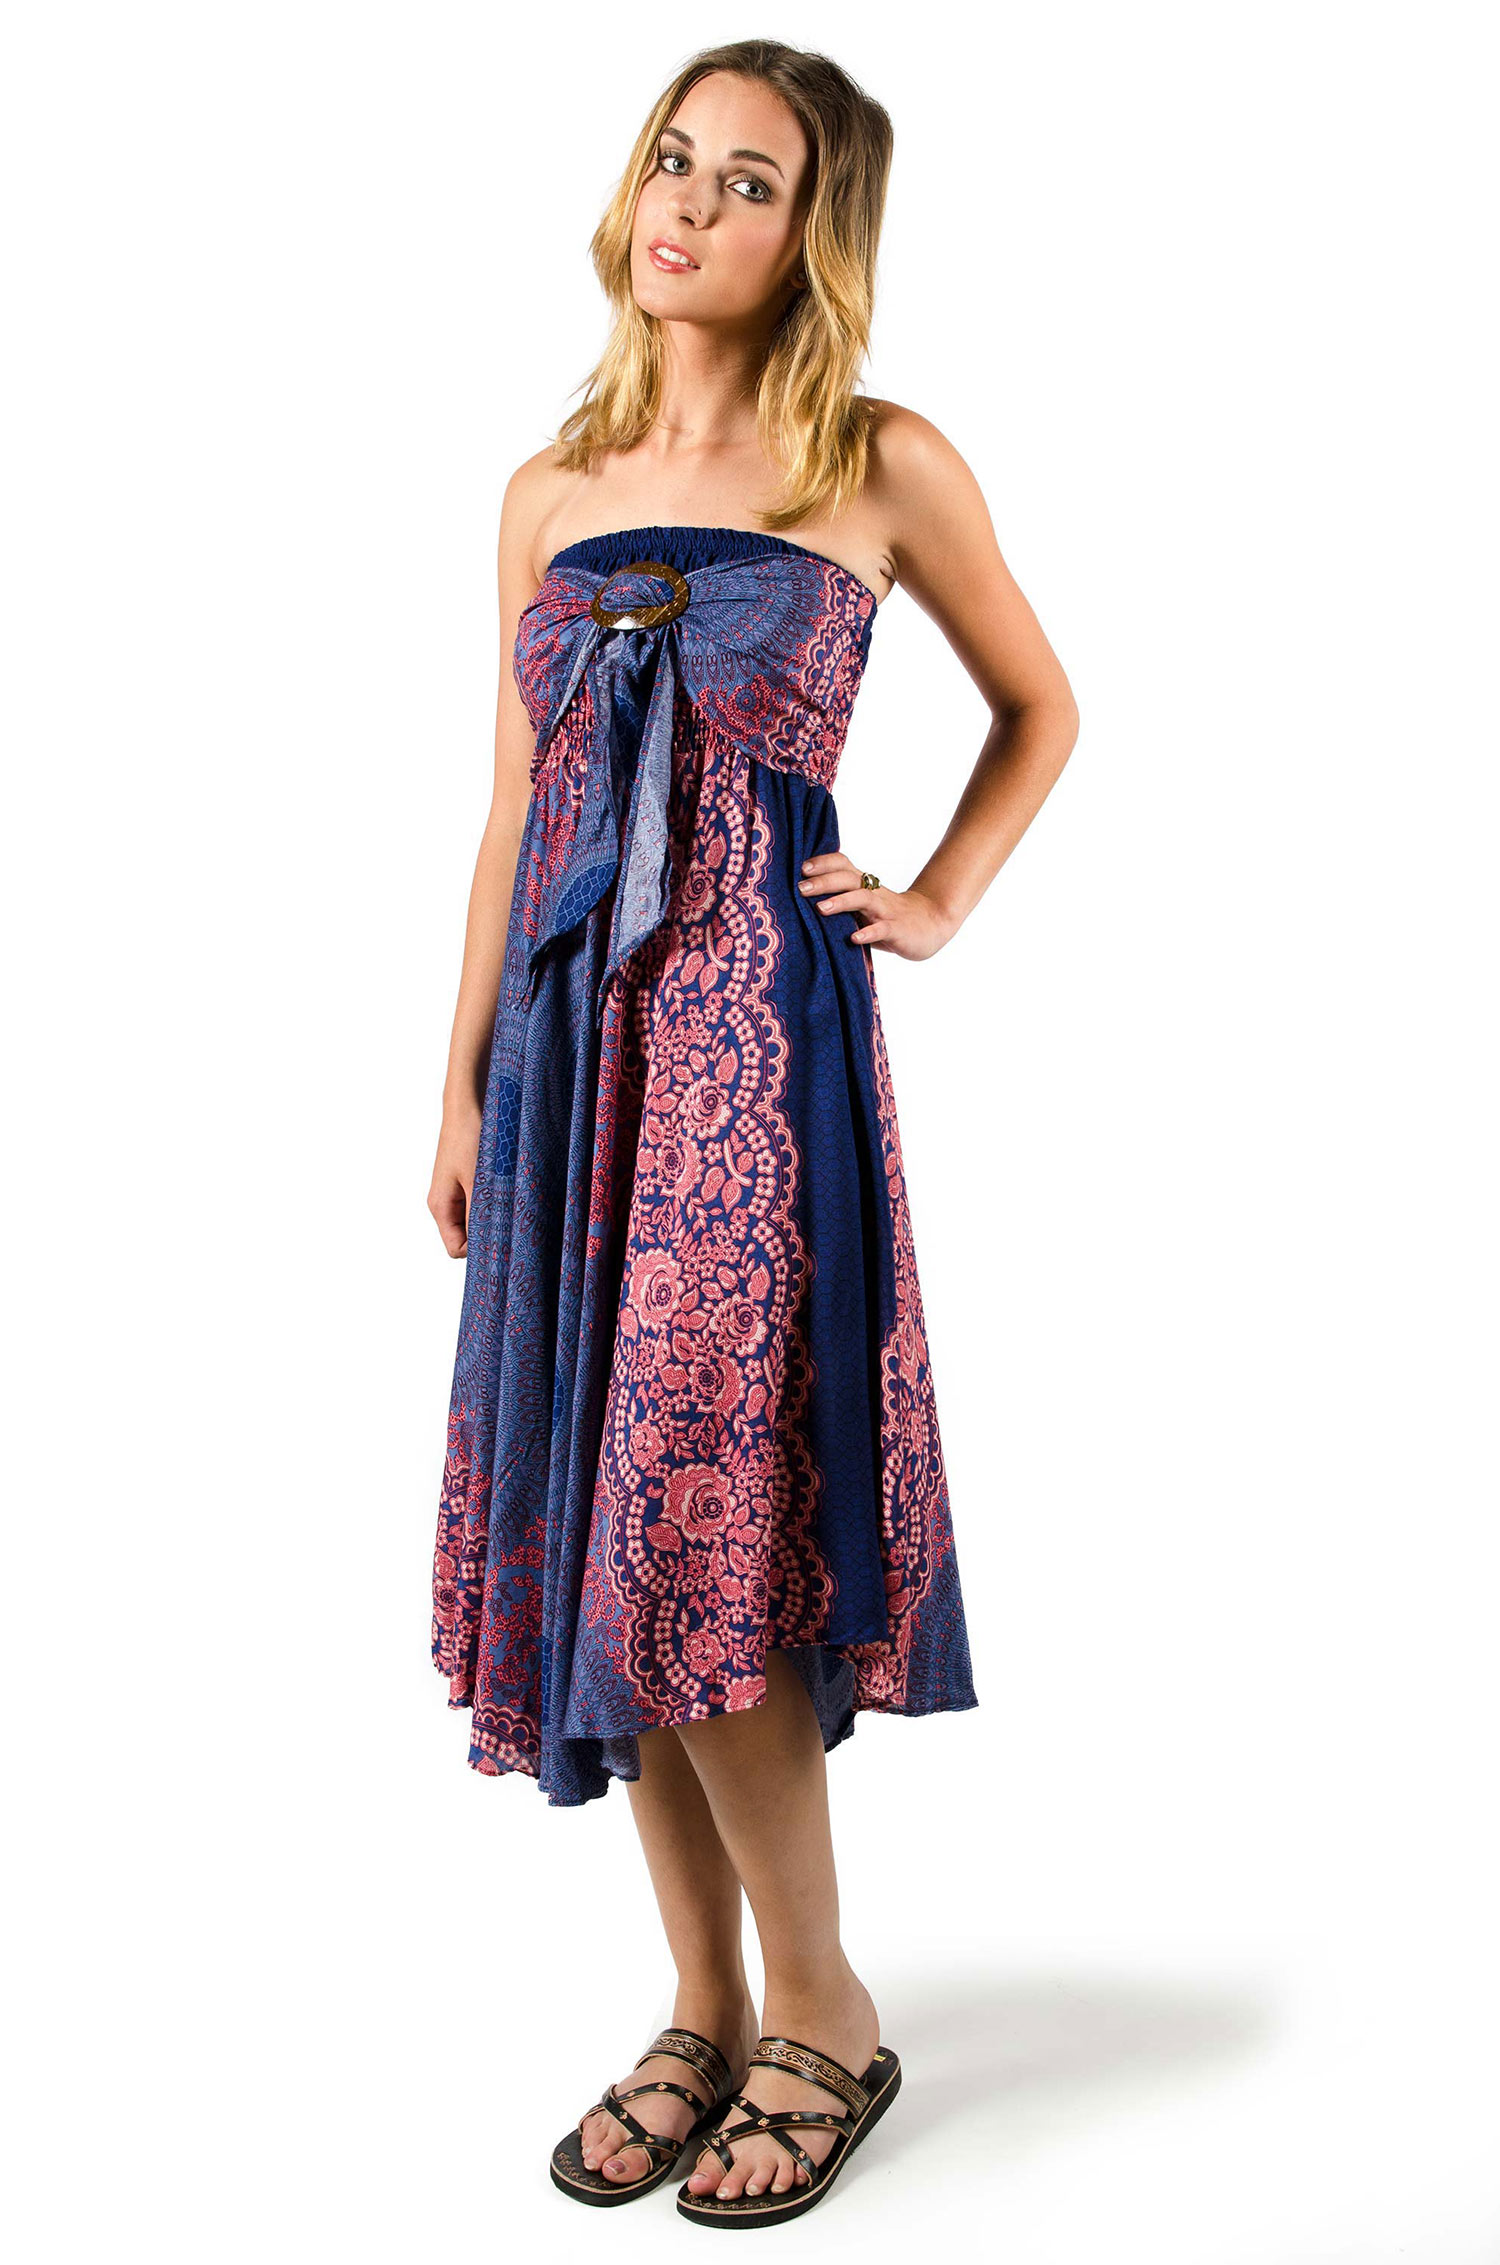 Peacock Print Rayon Dress / Skirt Blue